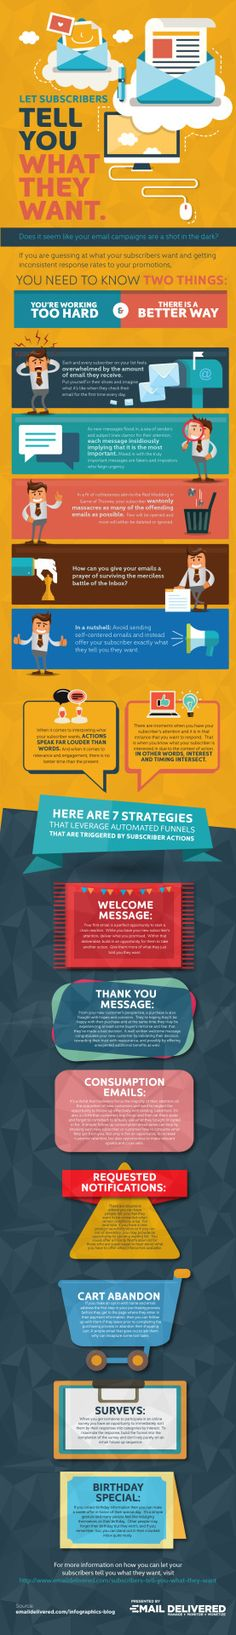 Let Your Subscribers Tell You What They Want #infographic